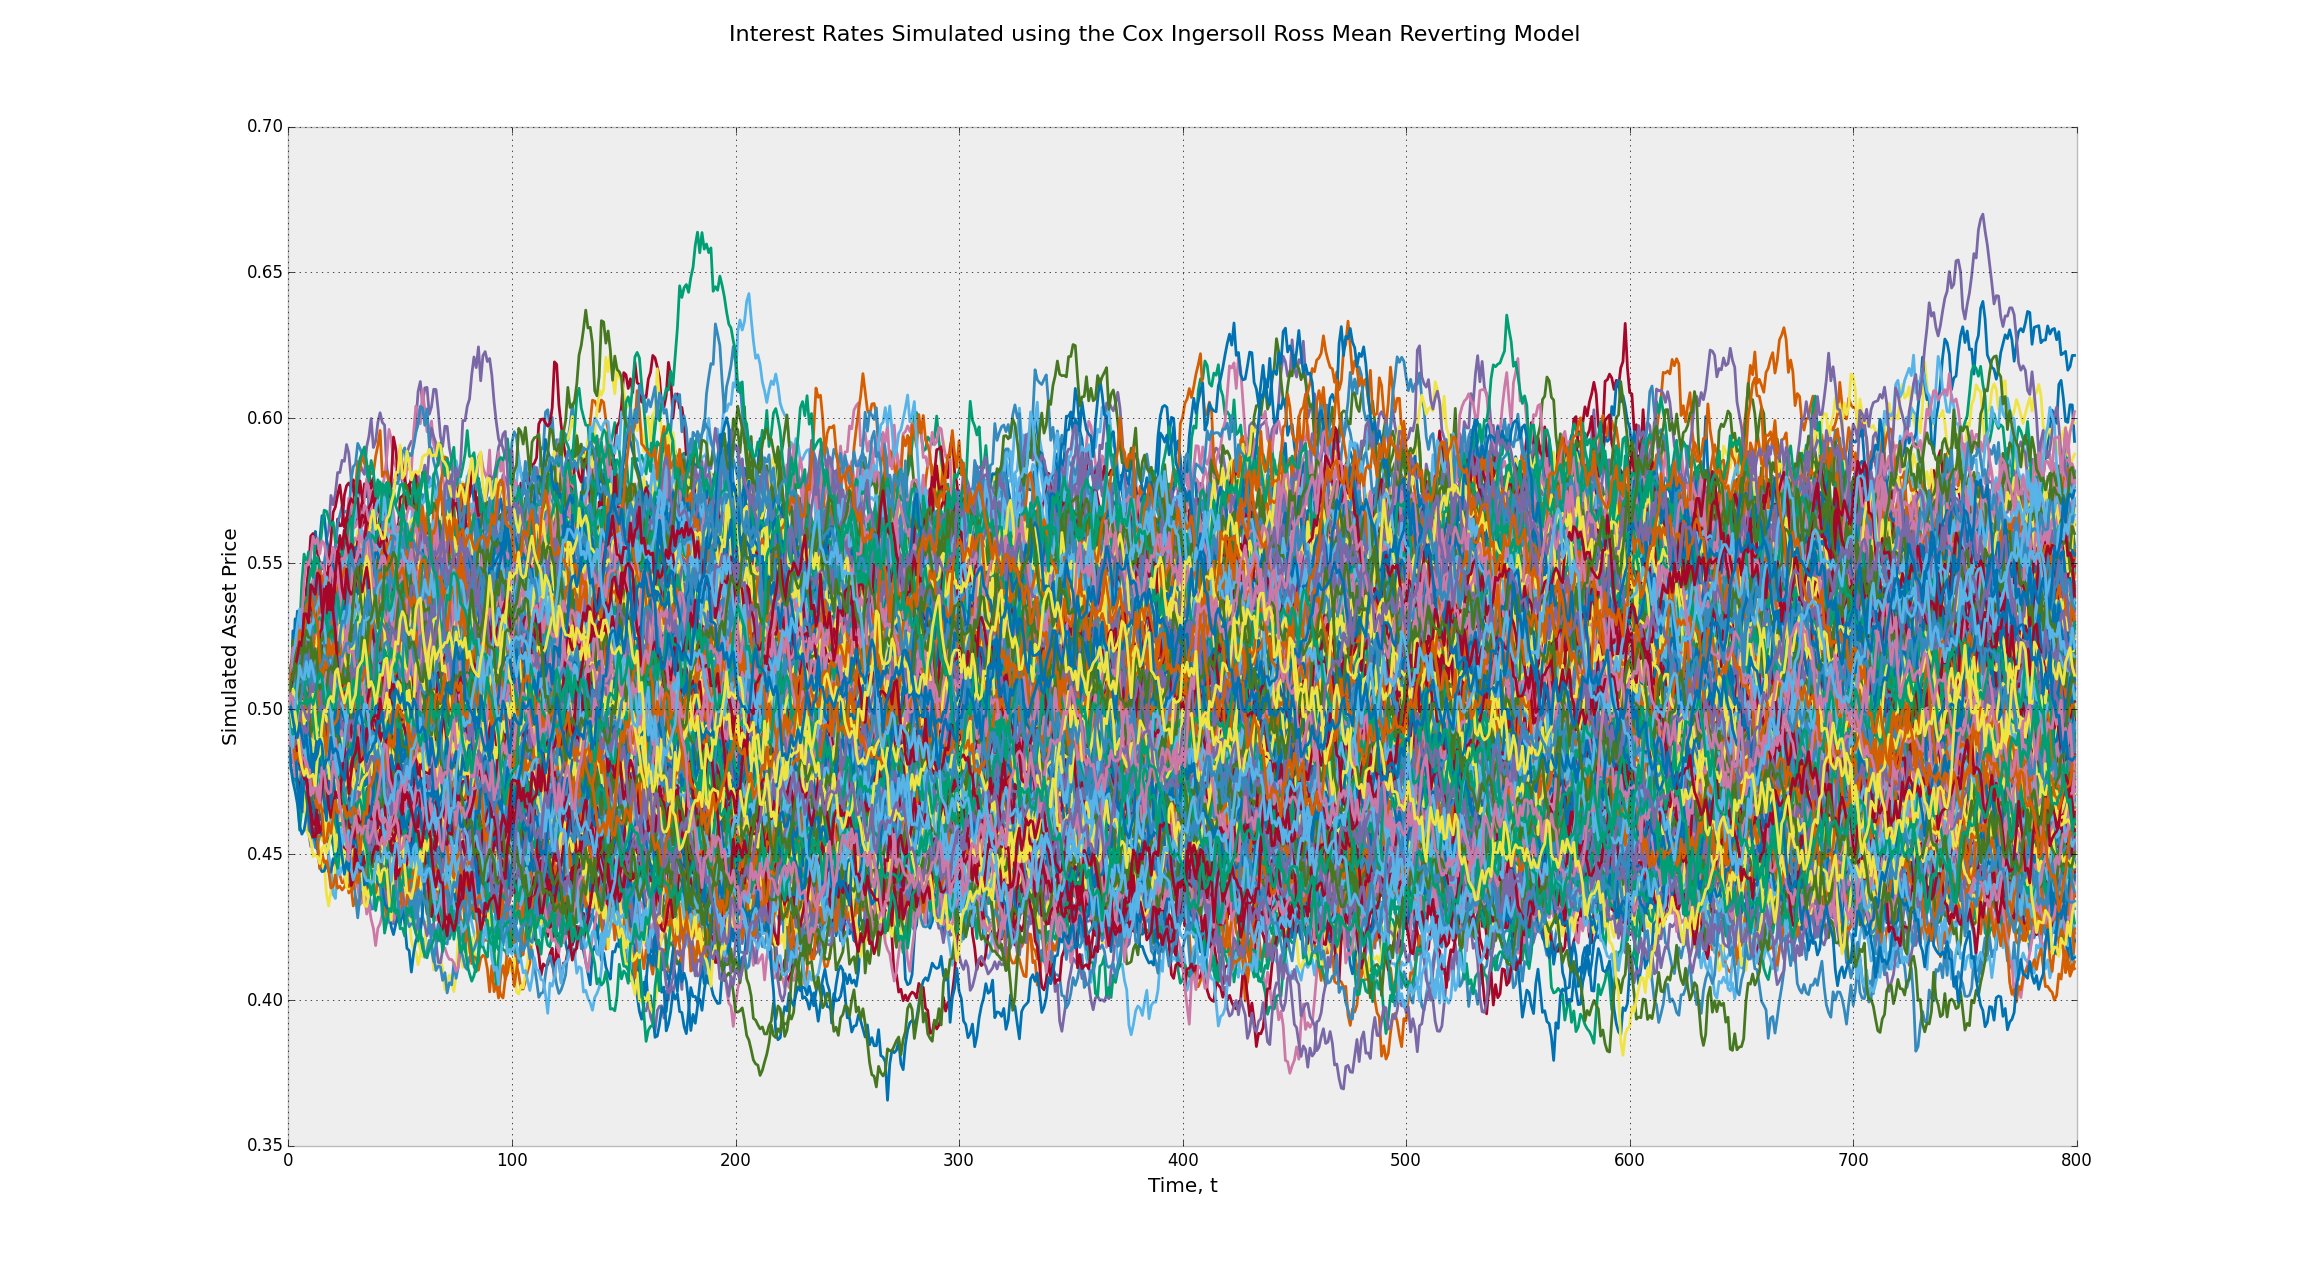 Interest Rates Simulated using the Cox Ingersoll Ross Mean Reverting Stochastic Process - Many